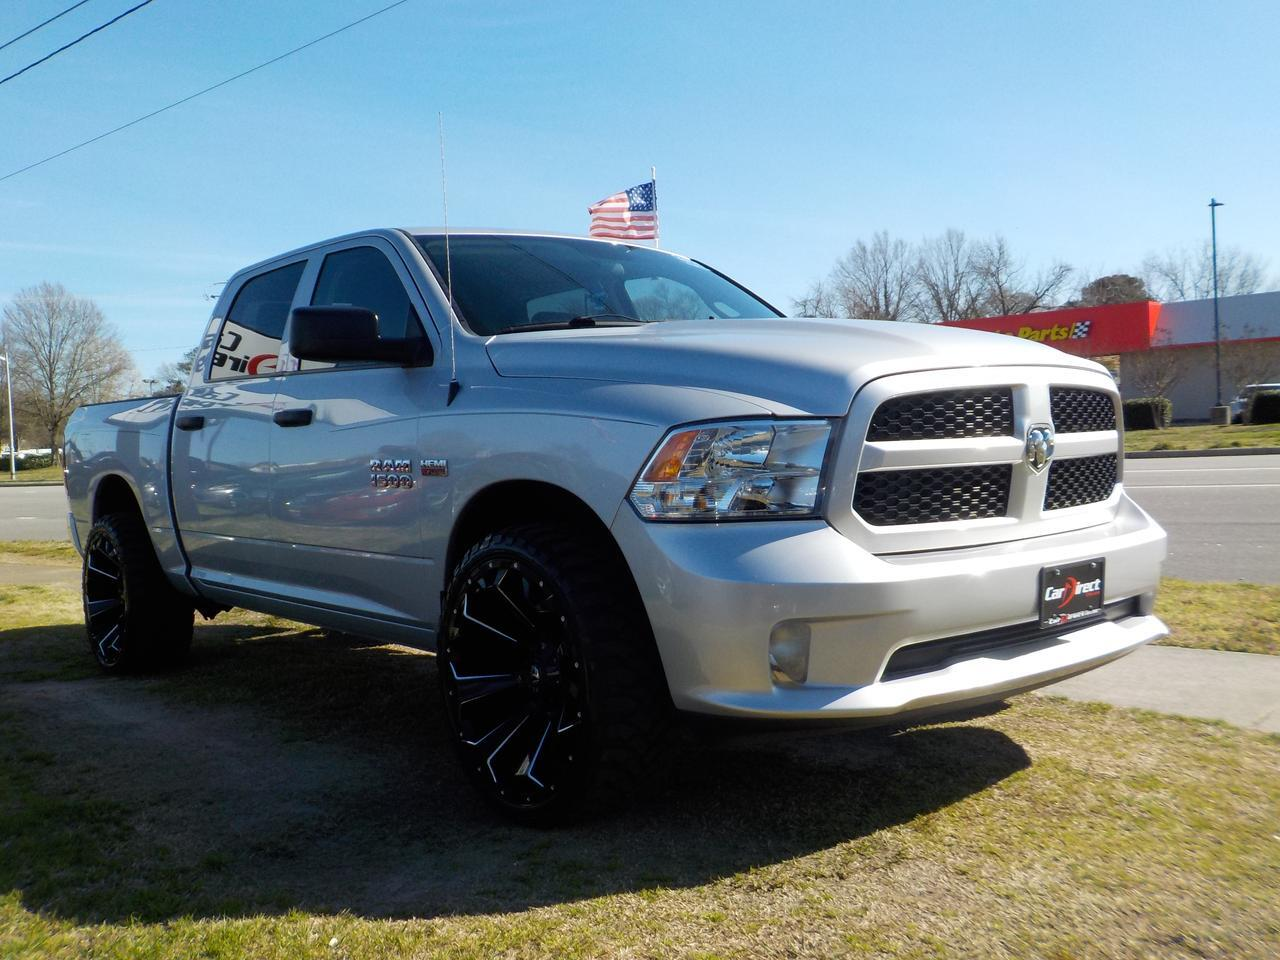 2015 RAM 1500 TRADESMAN CREW CAB 4X4, WARRANTY, CUSTOM FUEL RIMS, TOW, KEYLESS ENTRY, BED LINER, AUXILIARY PORT! Virginia Beach VA